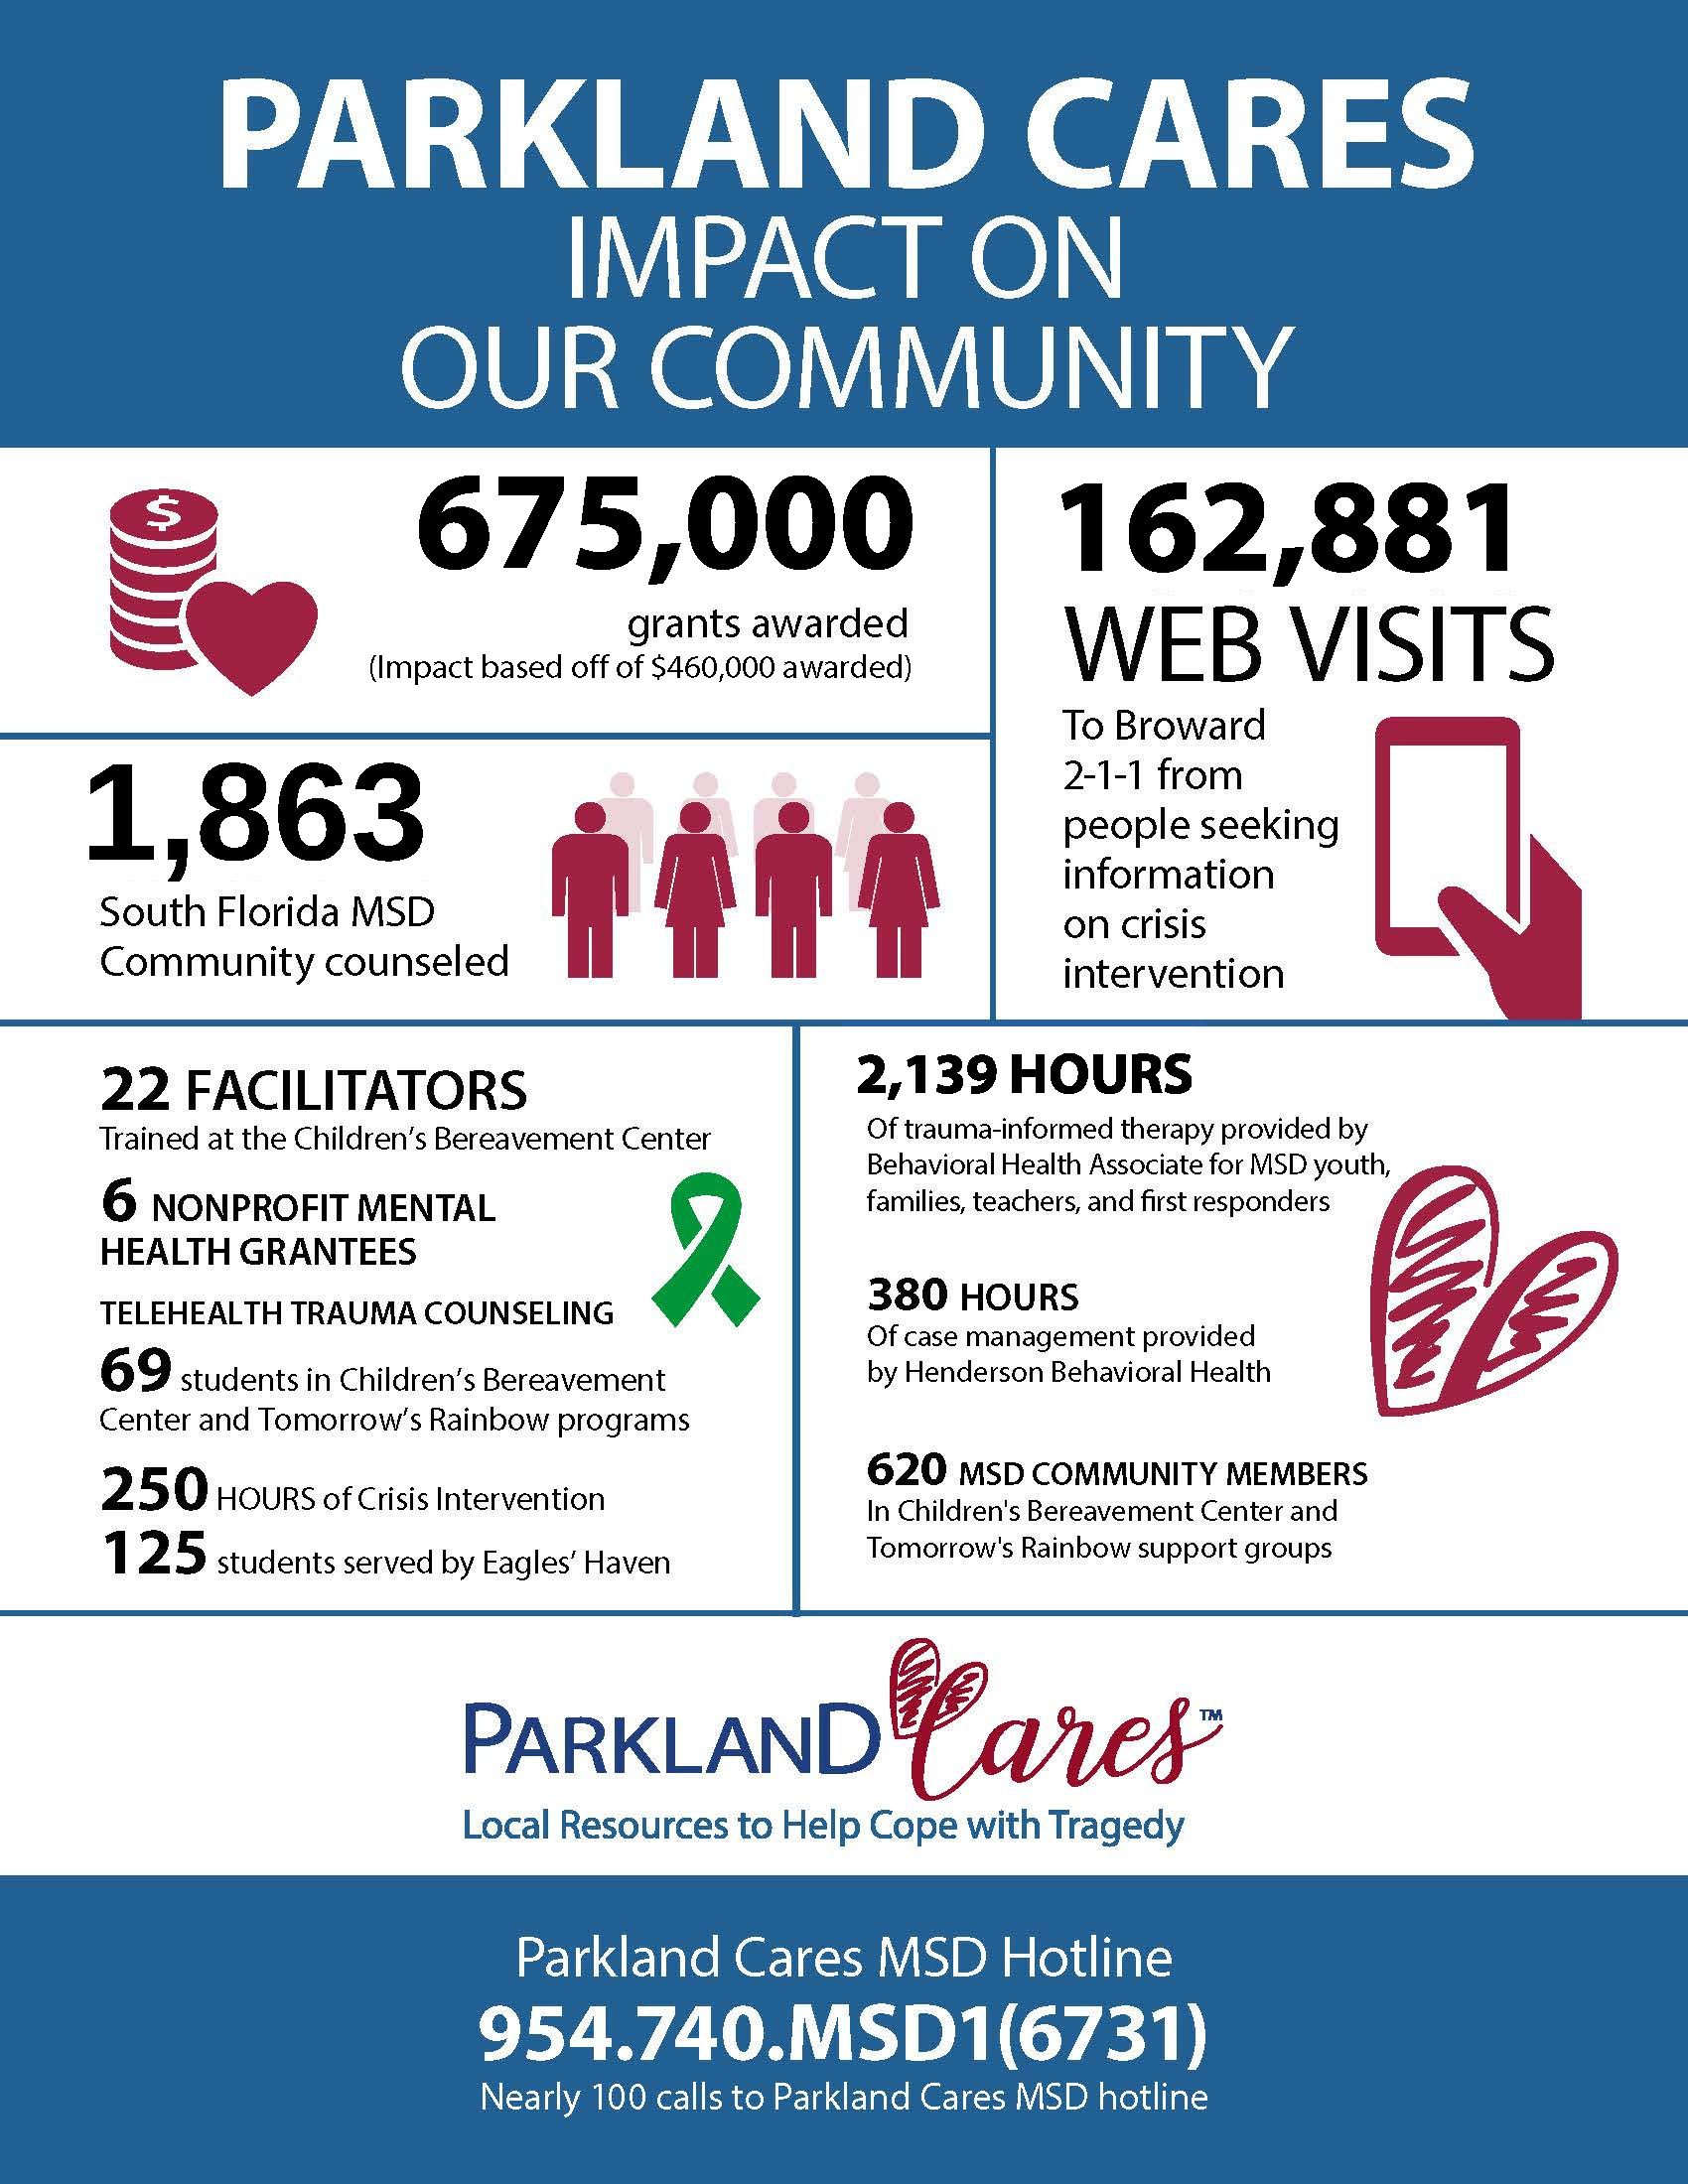 Parkland Cares impact on our community